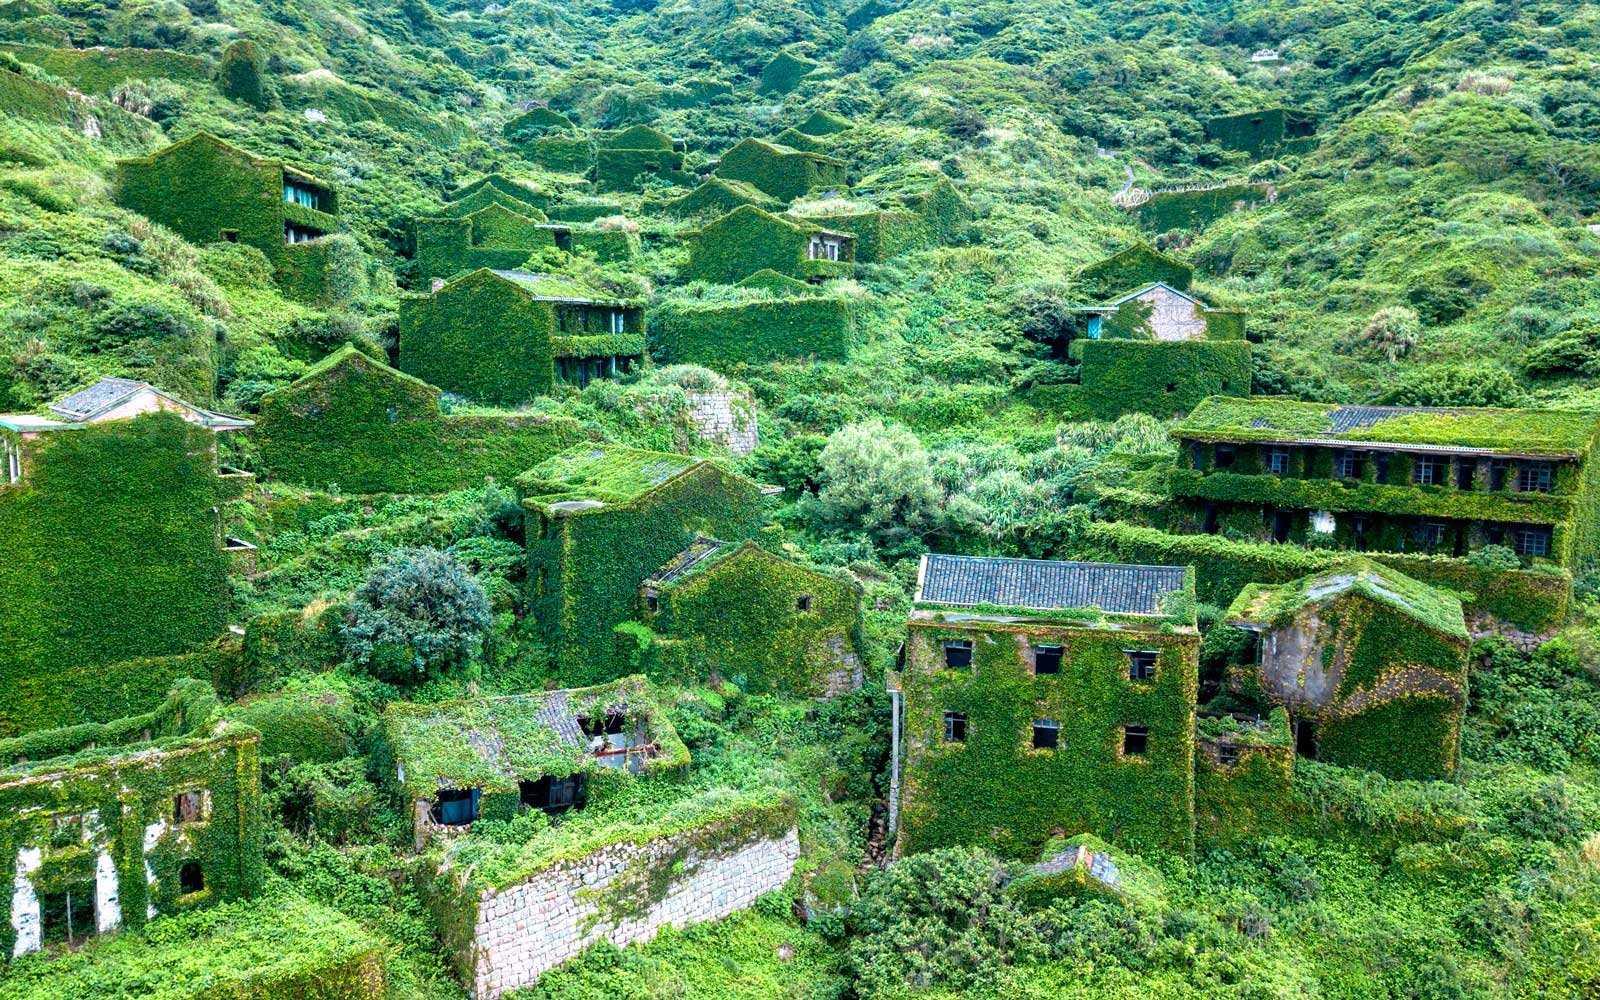 Aerial view of overgrown village in China